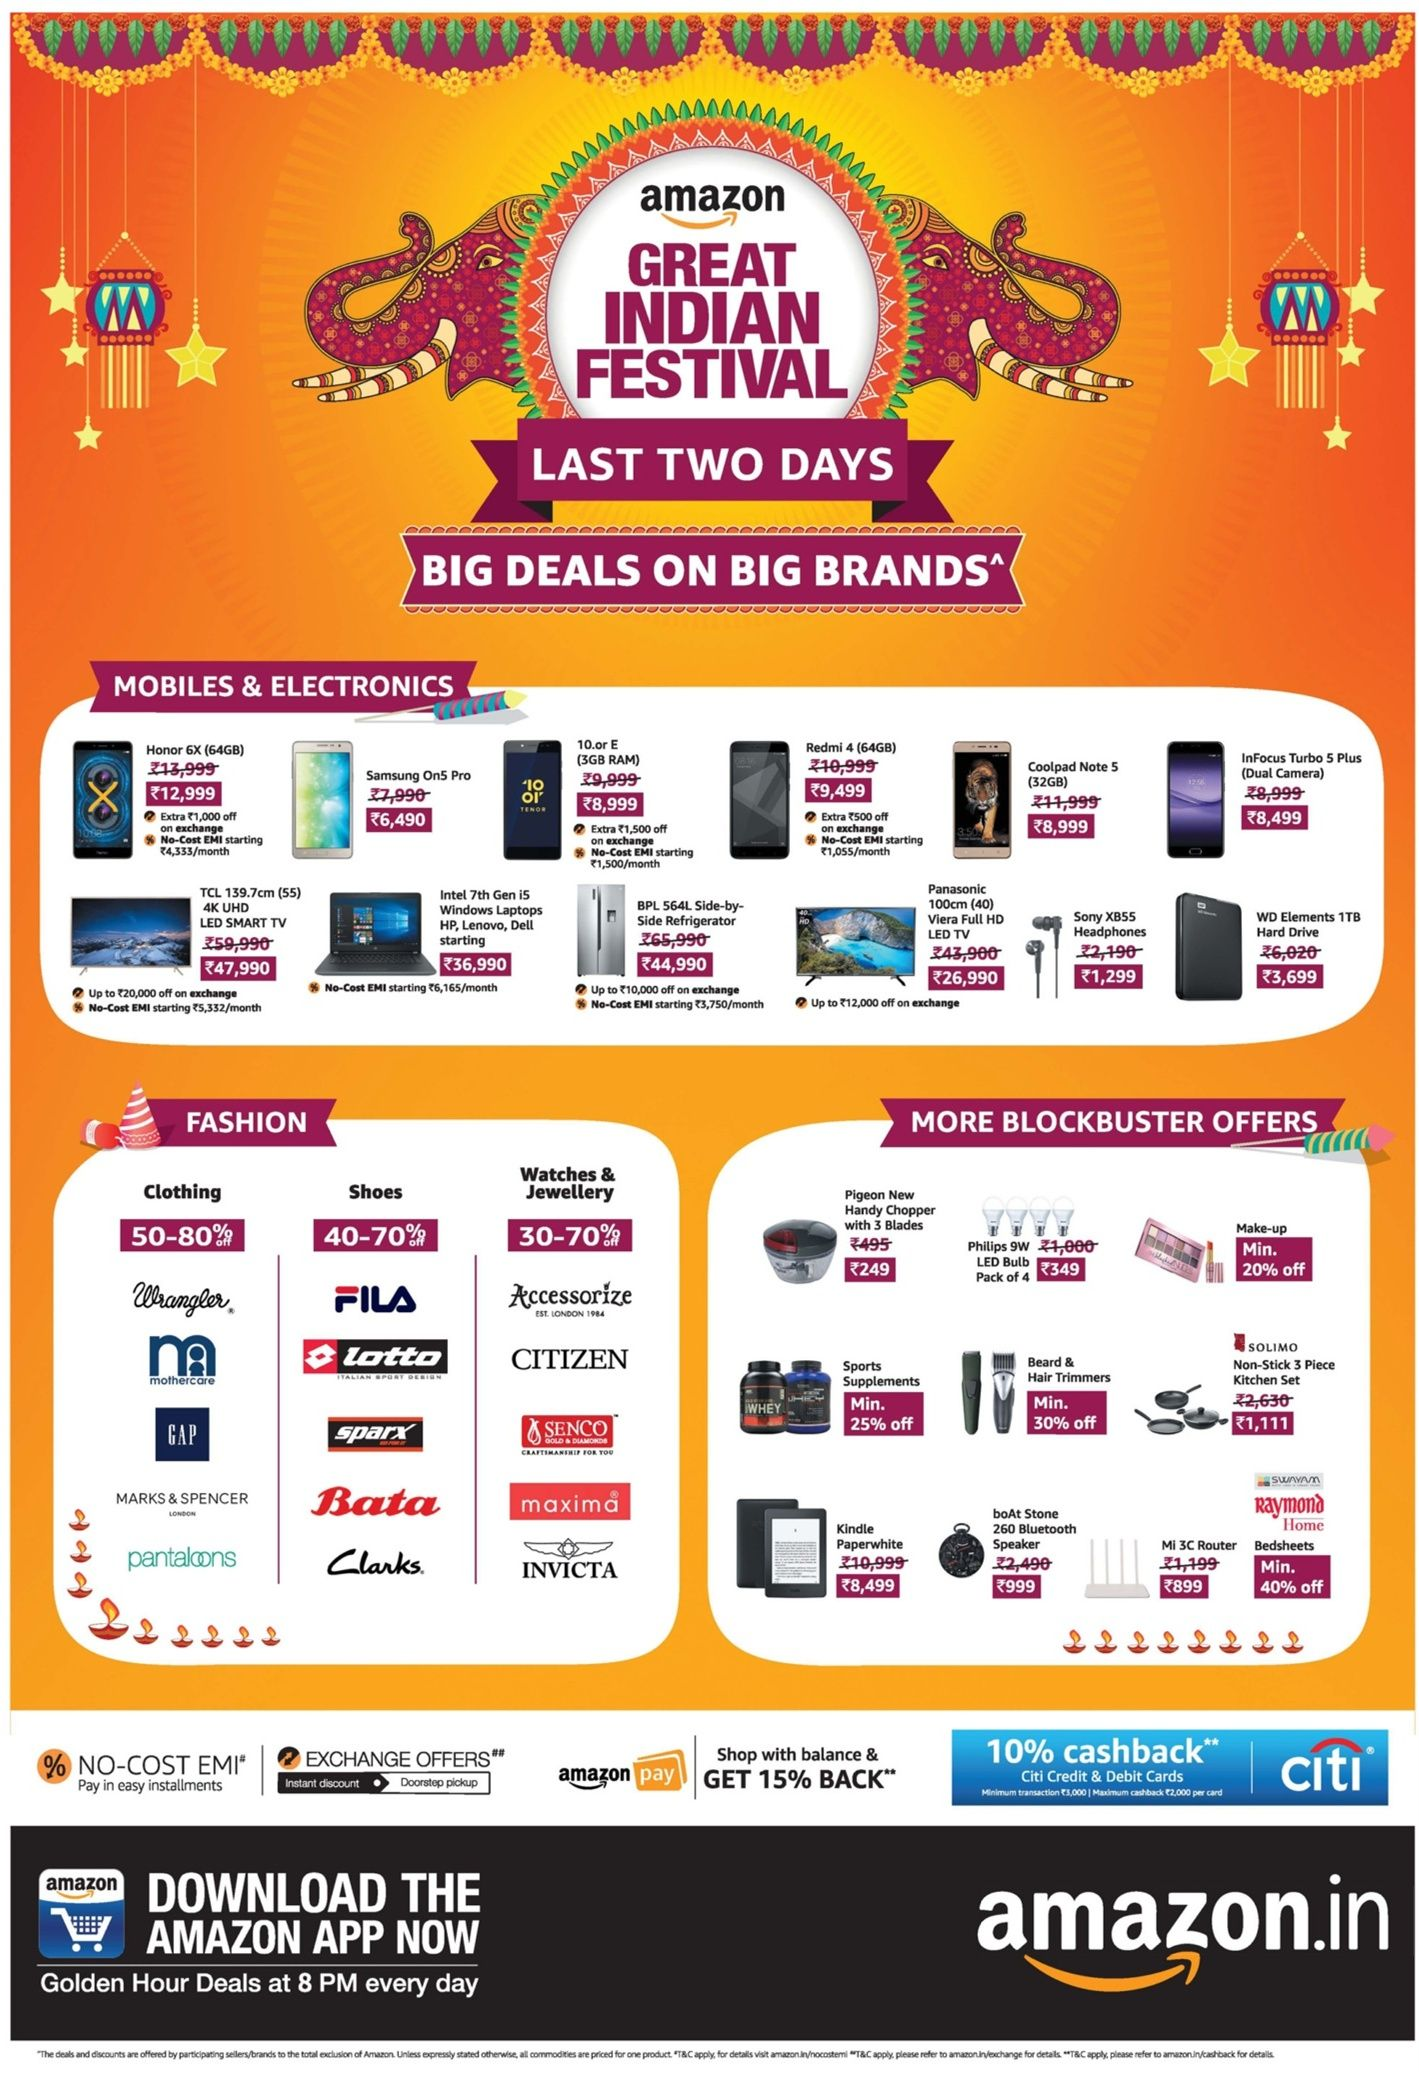 Amazon Great Indian Festival Last Two Days Ad Times Of India Delhi Check Out Amazon Advertisement Collection At Https Www Adve Indian Festivals Festival Ads